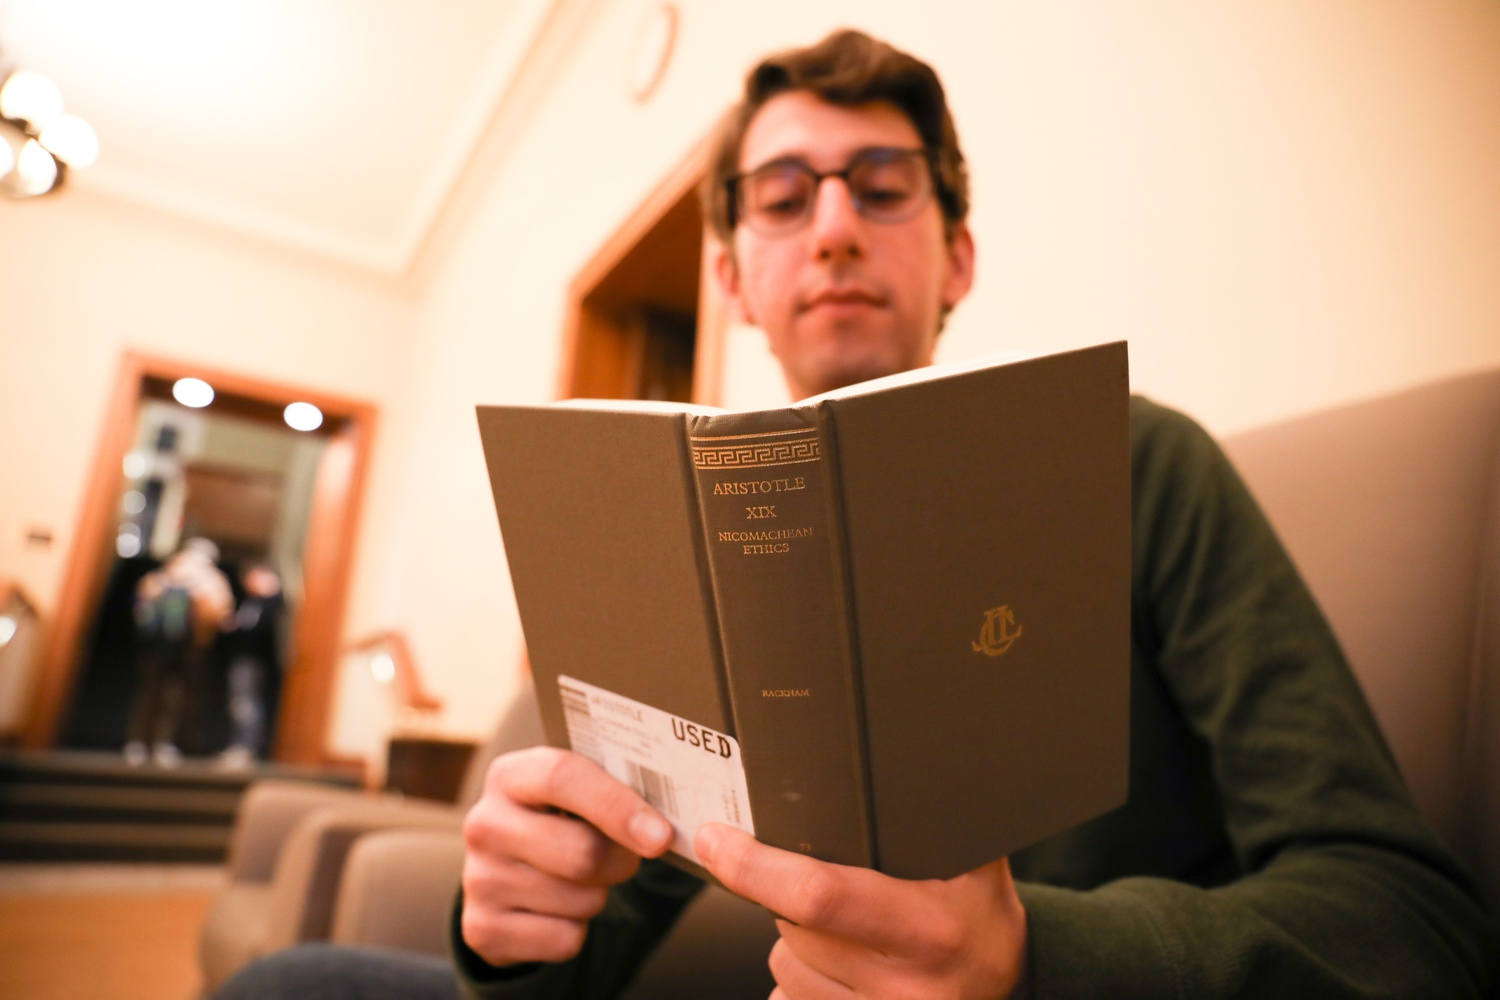 Aristotle M. Vainikos '23, named after his grandfather Aristotelis, explores the experiences of students who share the same name as famous figures.